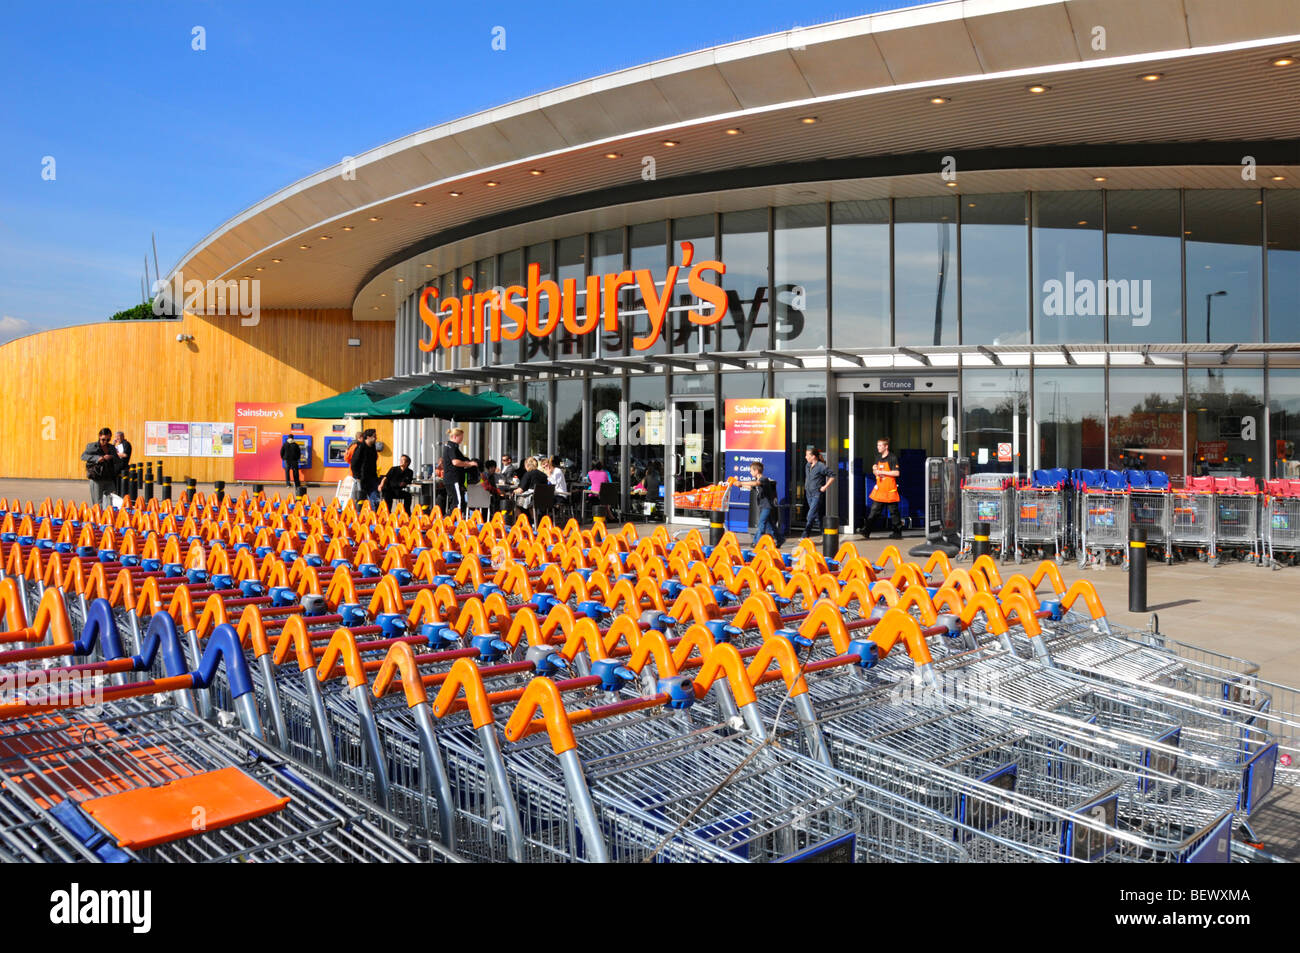 Sainsburys supermarket trolley park and entrance with Starbucks coffee shop - Stock Image